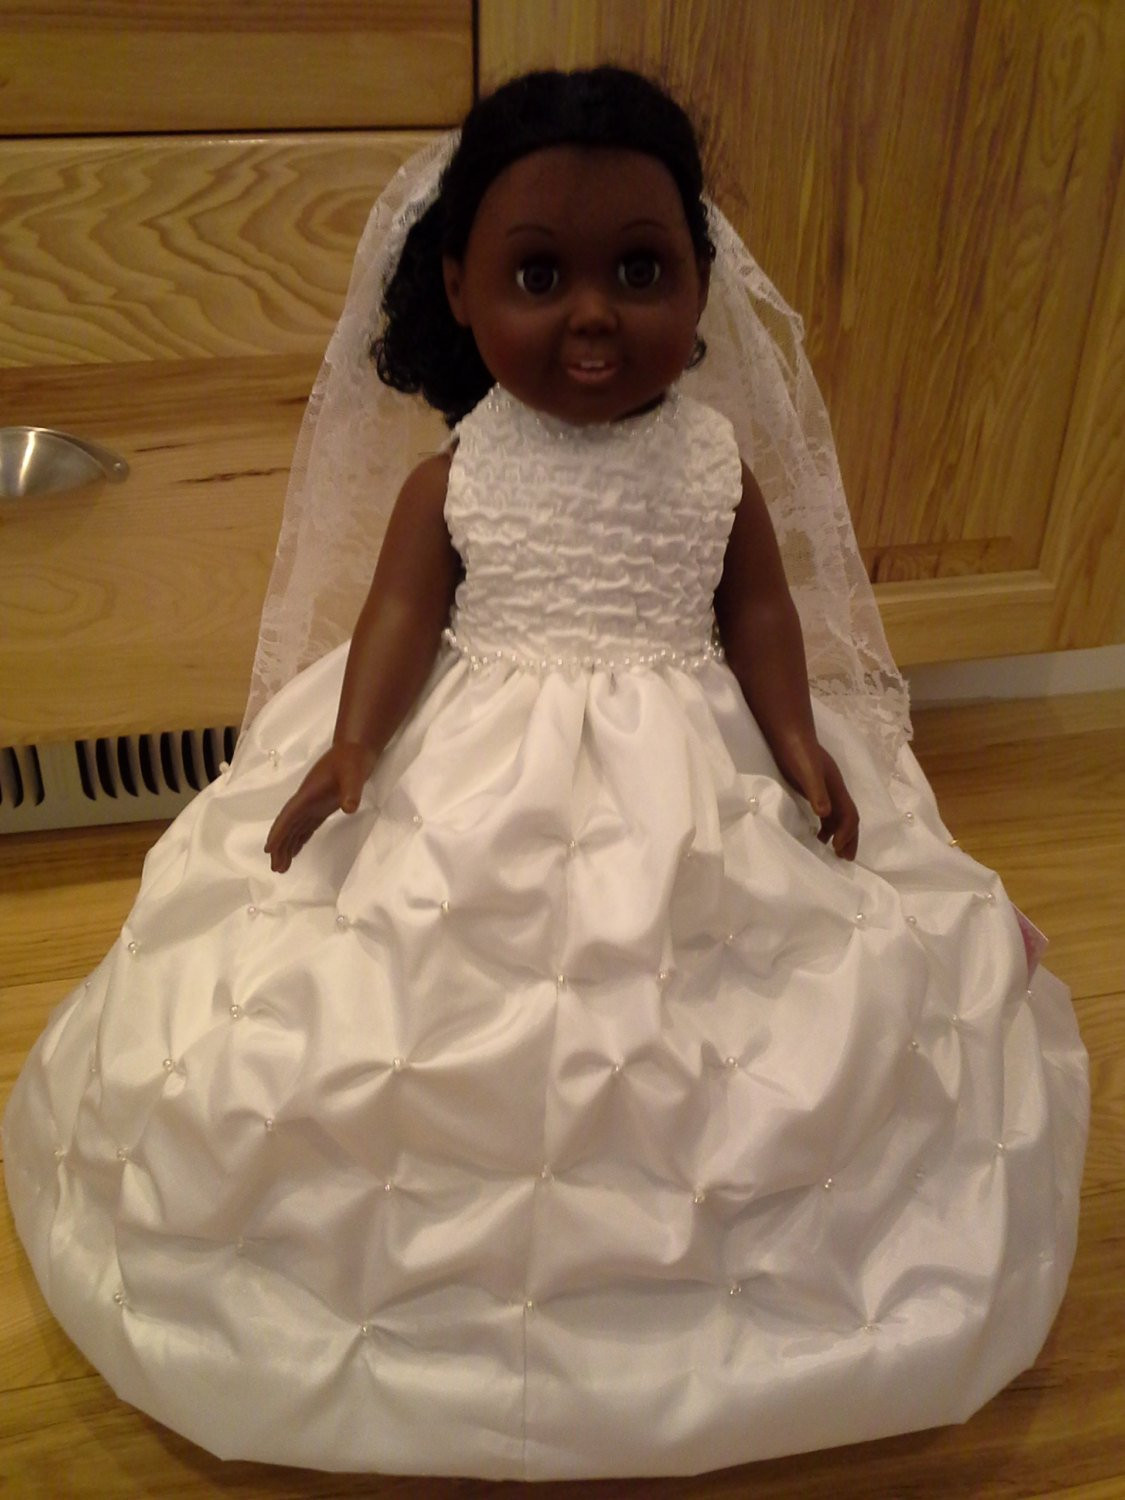 Elegant Doll Wedding Gown and Veil American Girl Doll American Girl Doll Wedding Dress Of Beautiful American Girl Doll Wedding Dress Satin and Silver American Girl Doll Wedding Dress